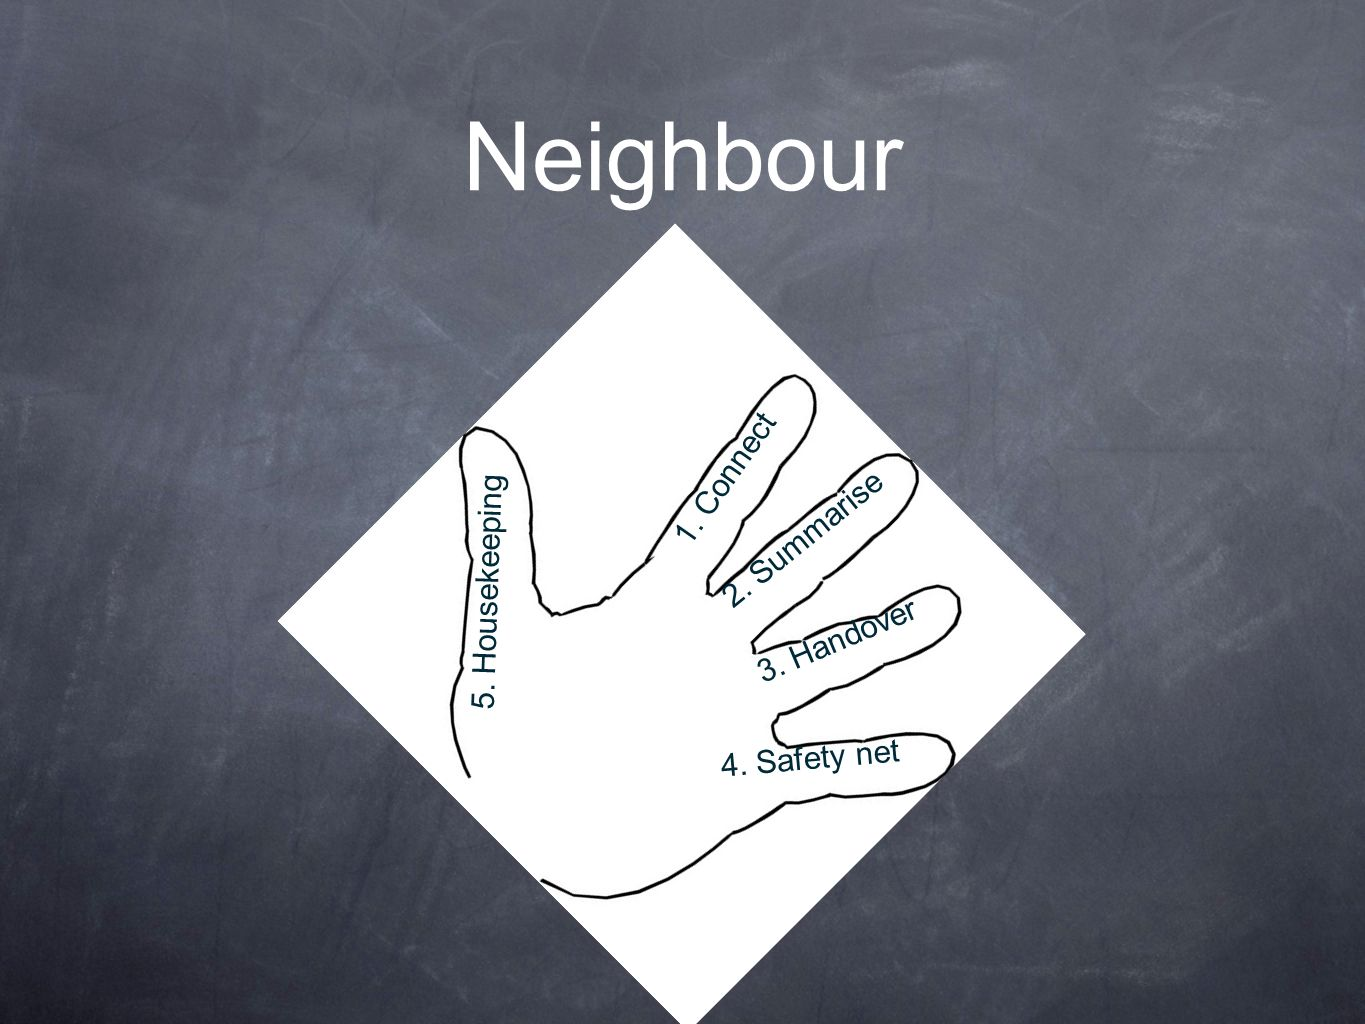 Neighbour 1. Connectt 2. Summarise 5. Housekeepingxt 3. Handover